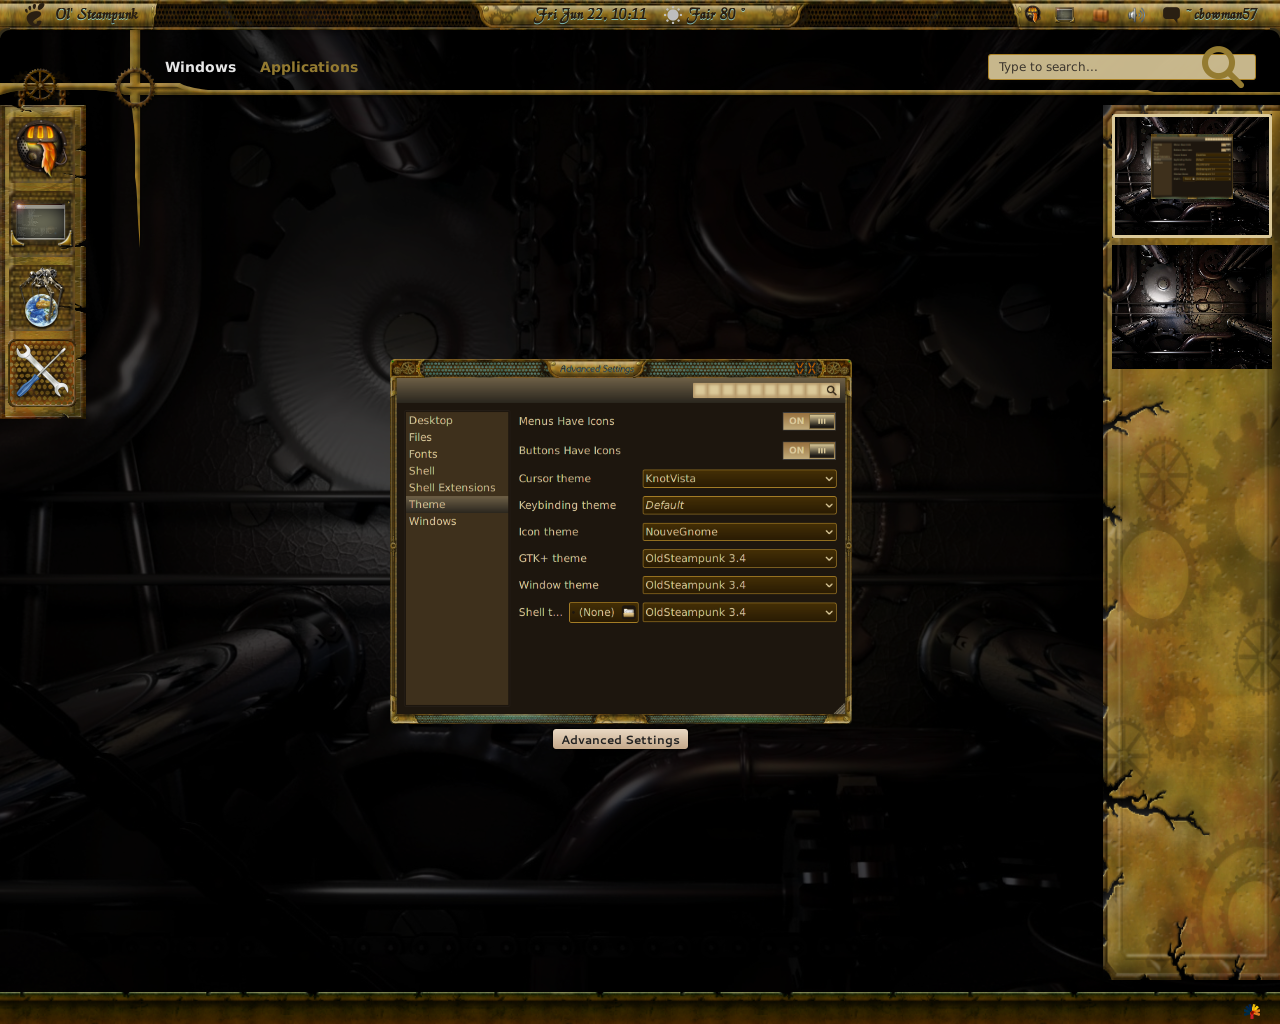 ~samriggs Old Steampunk 3.4 Gnome shell theme